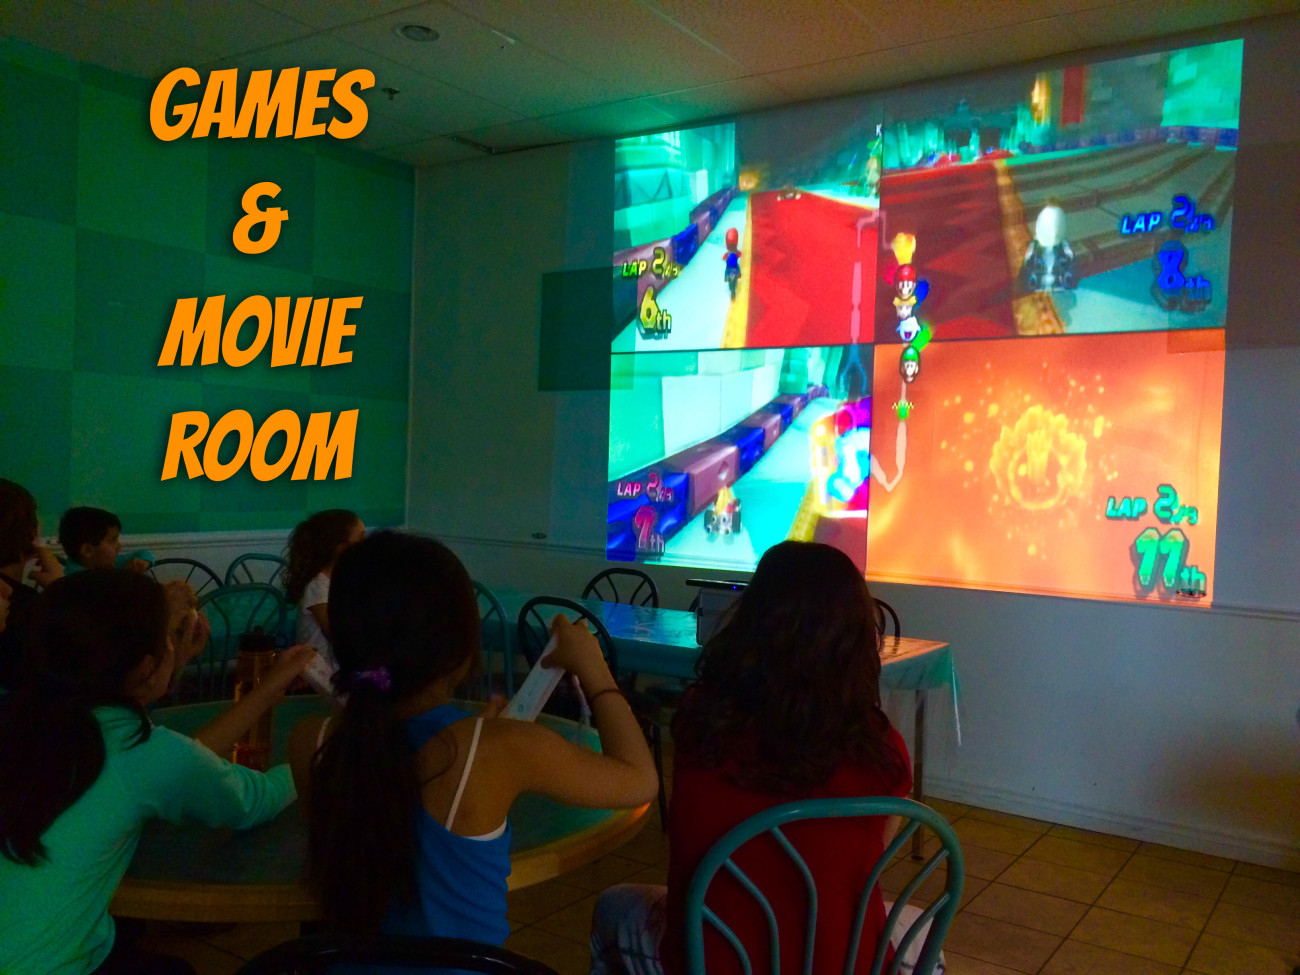 Games & Movie Room